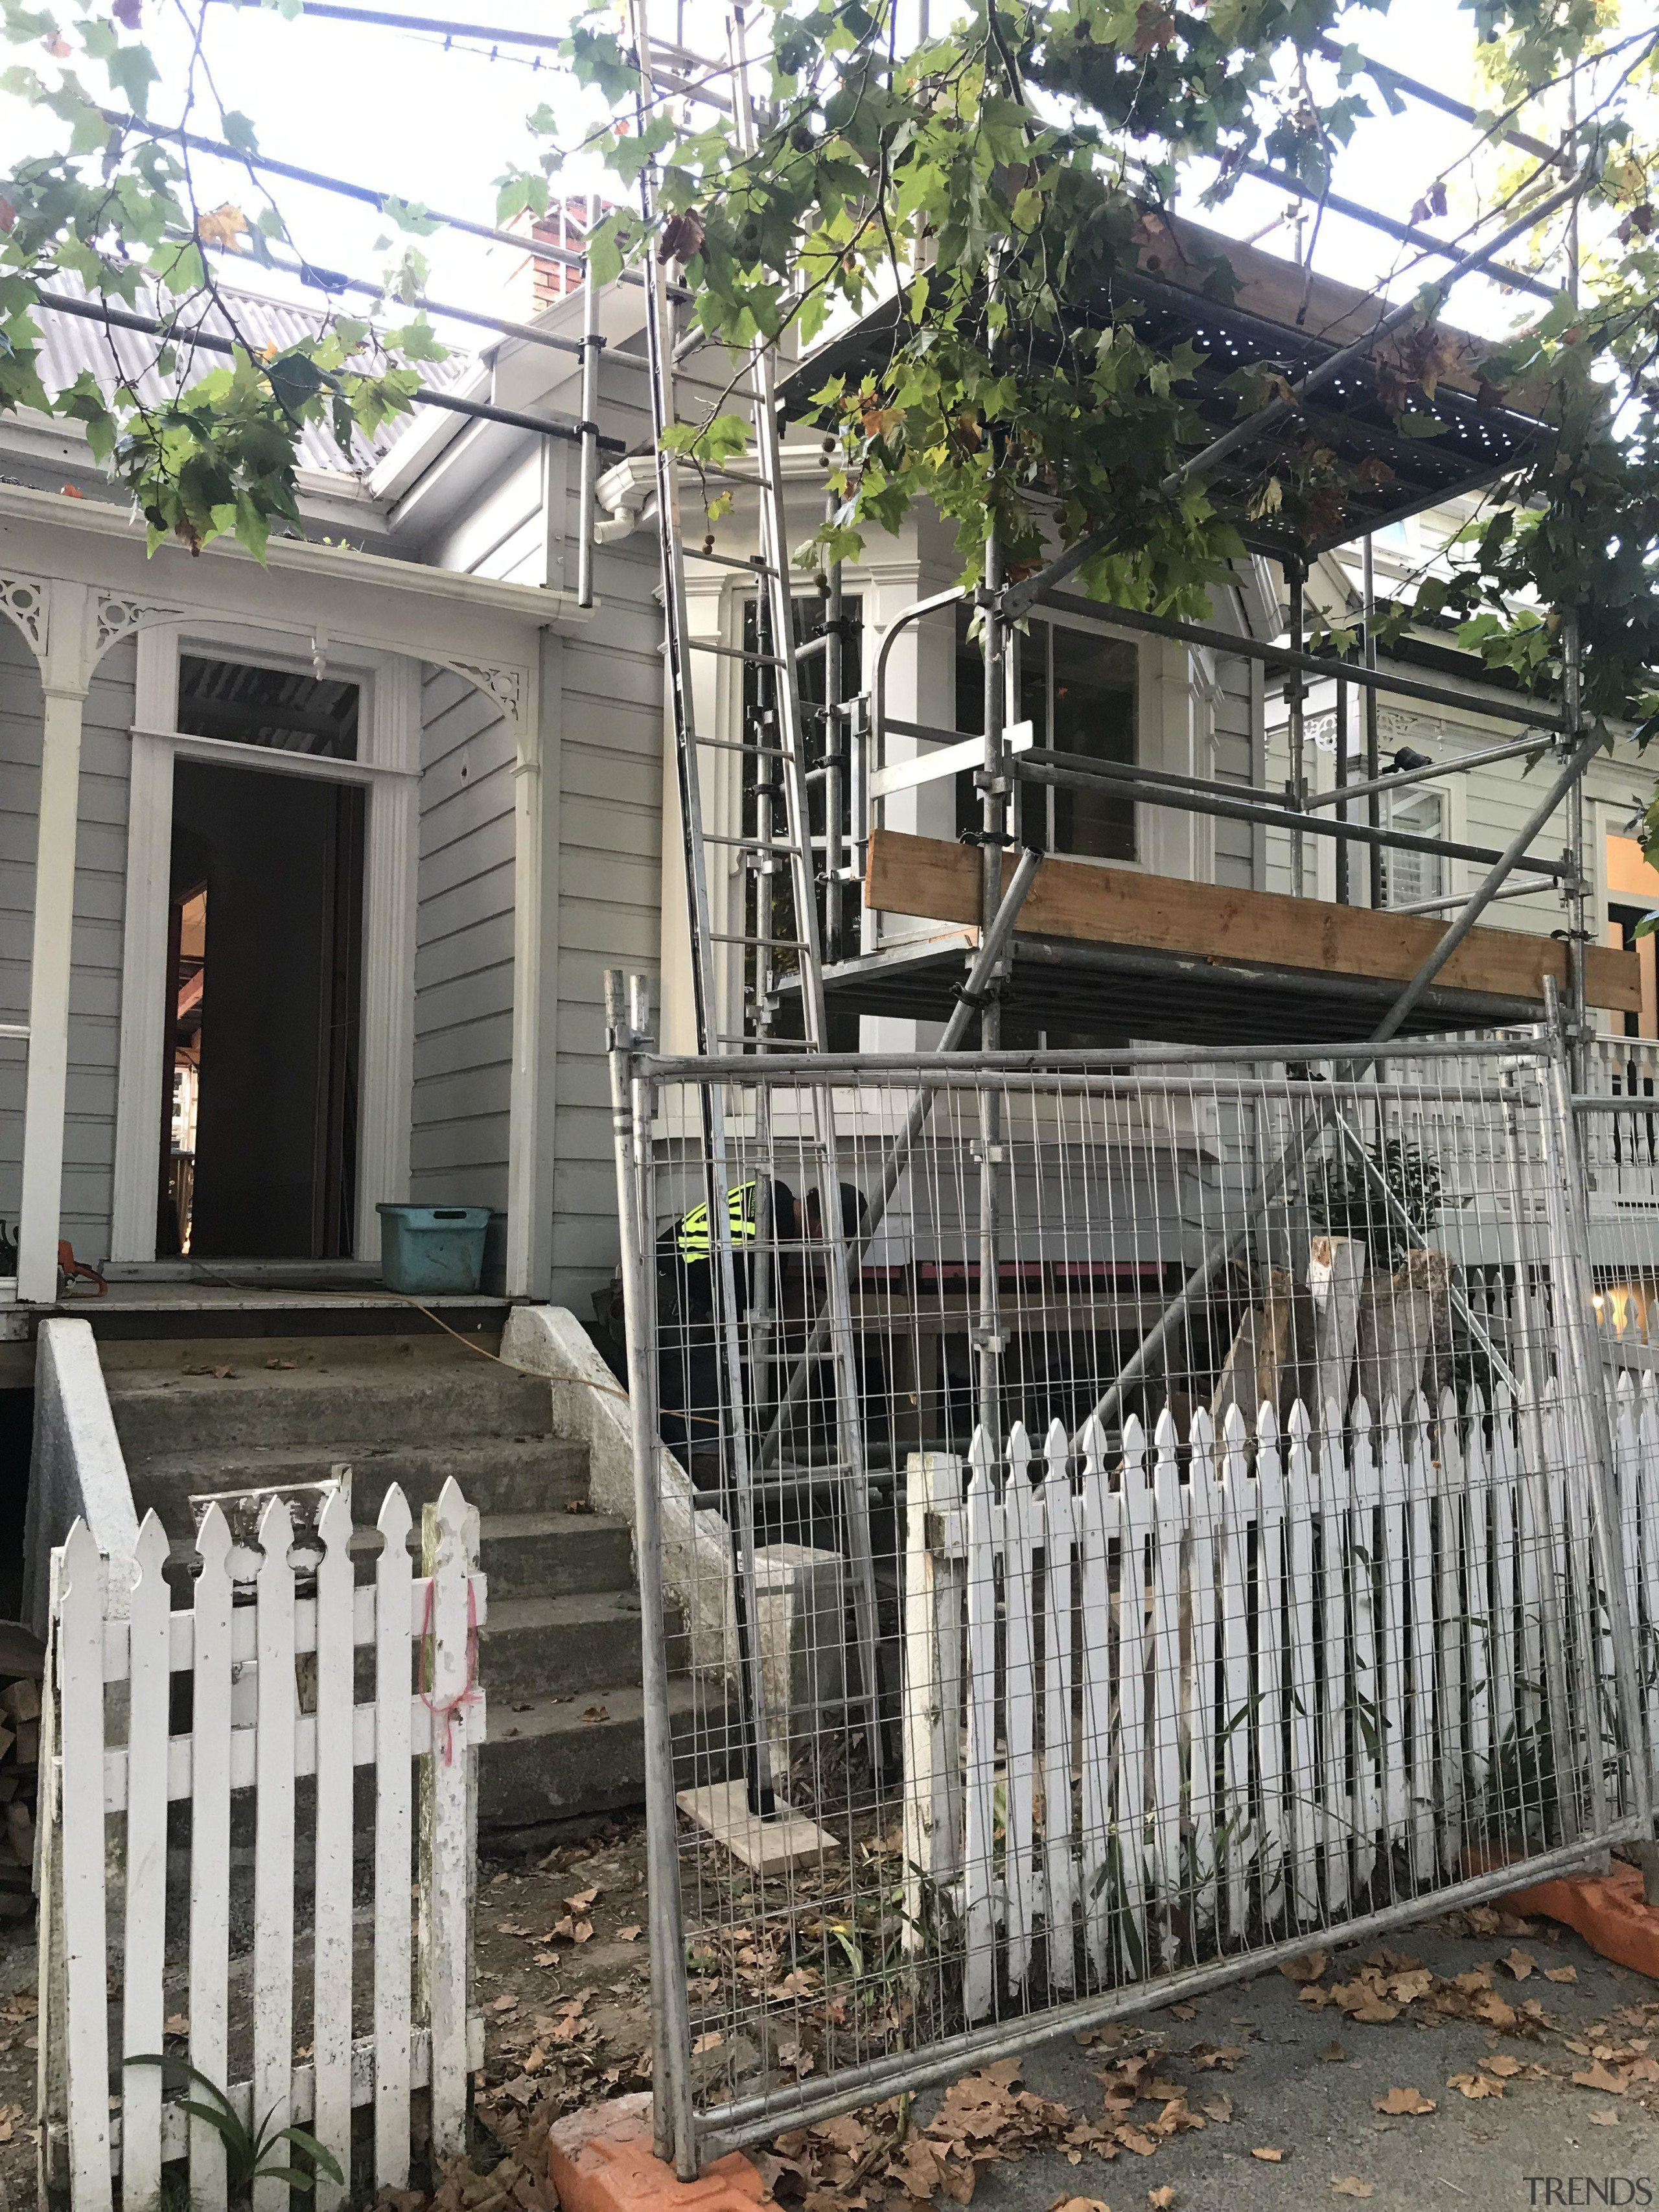 Scaffholding is all up and the new roof architecture, building, fence, home, house, iron, metal, tree, gray, black